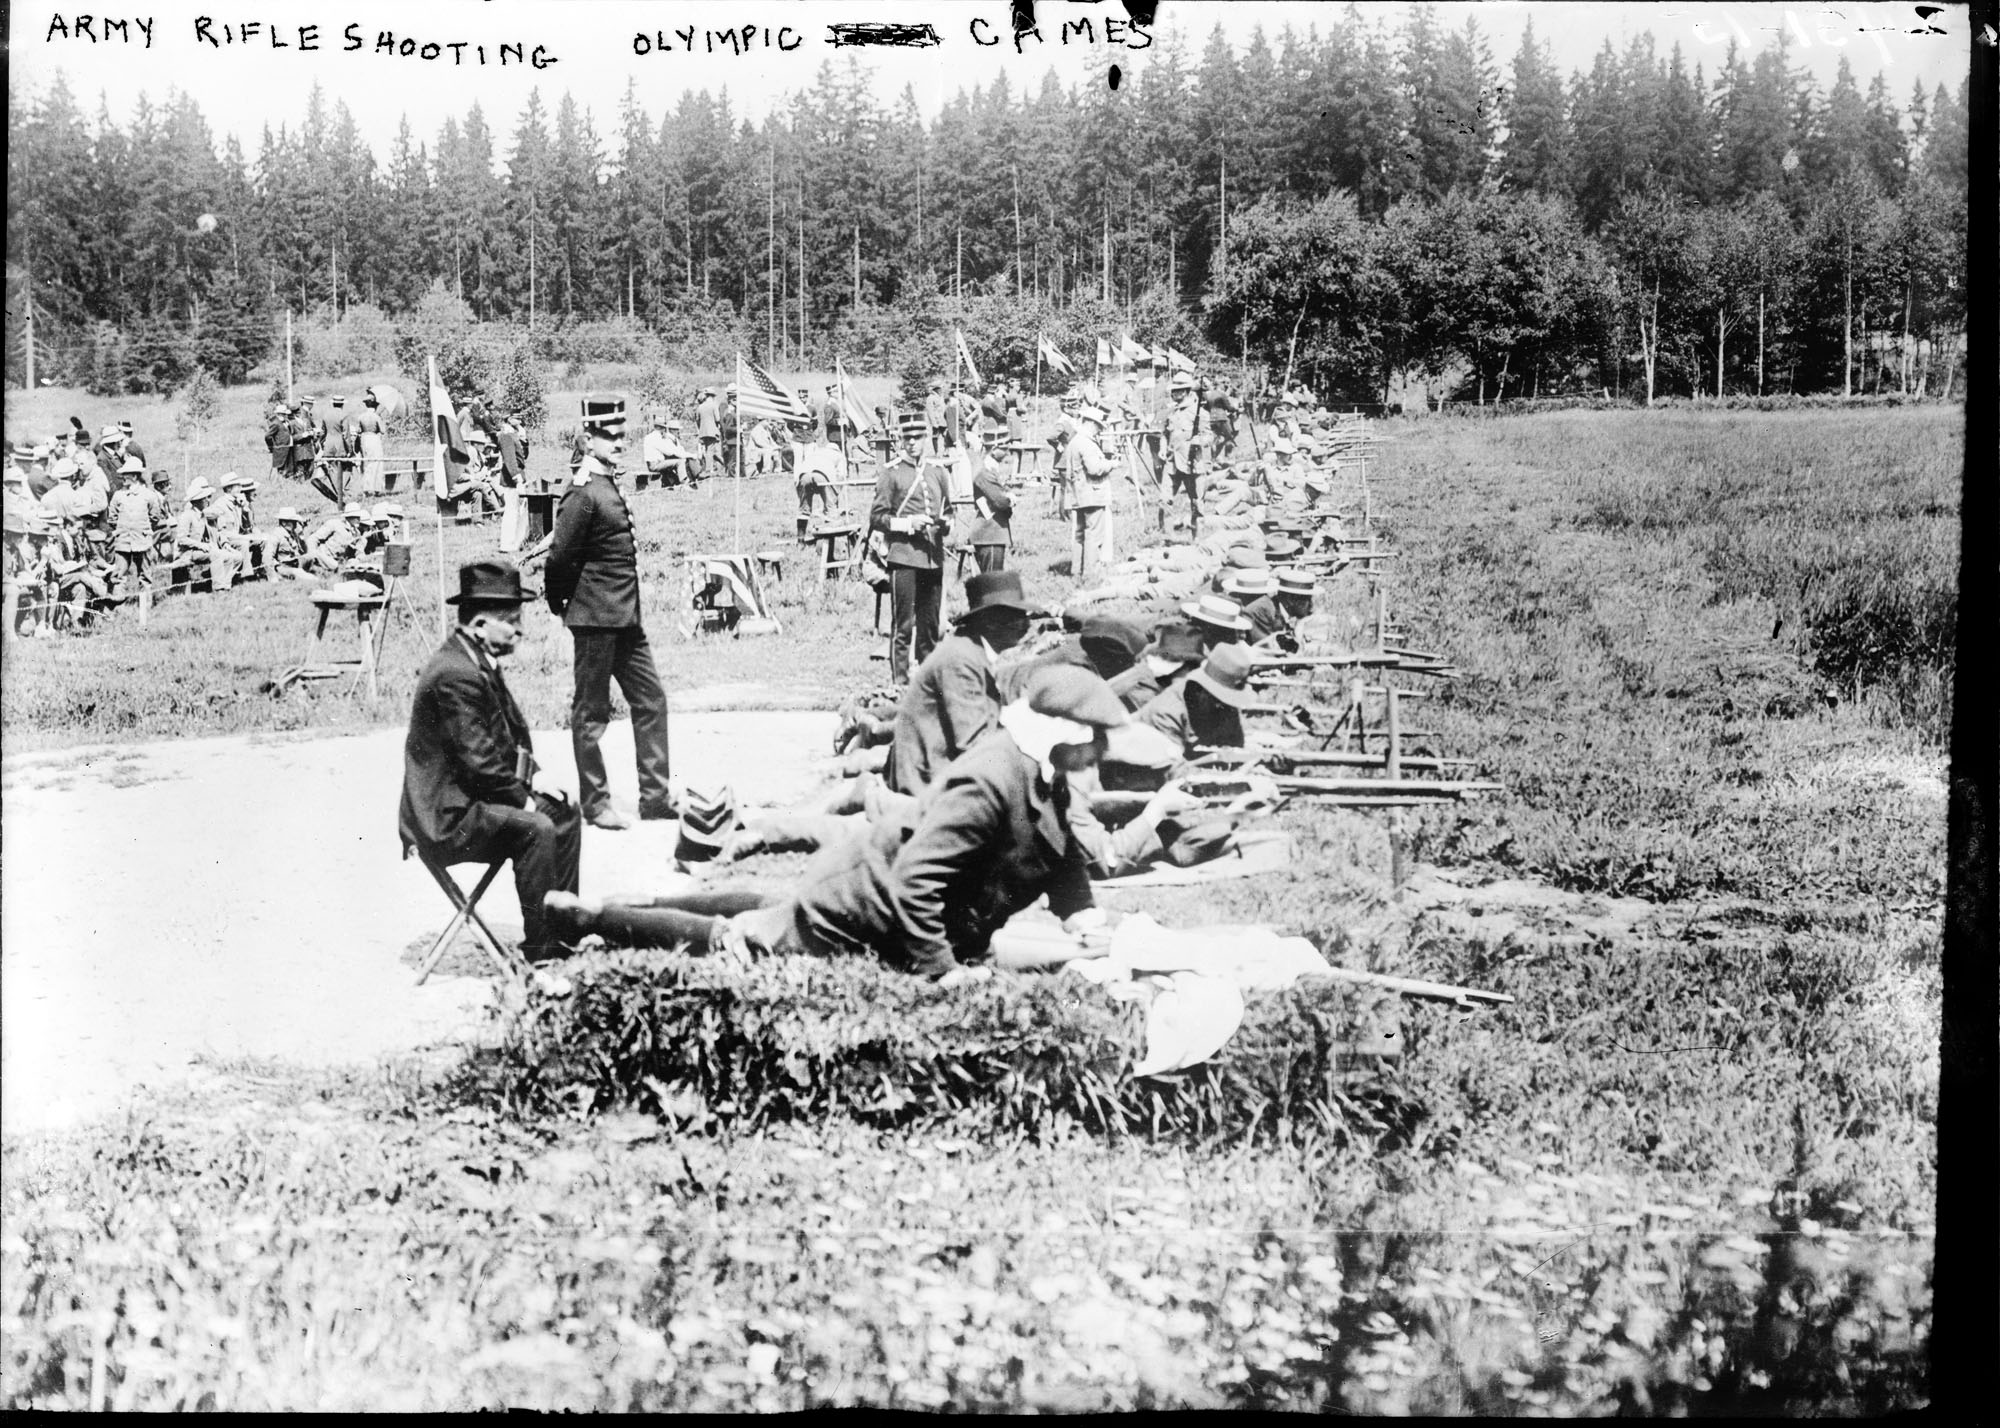 1912 Summer Olympics - Army rifle shooting